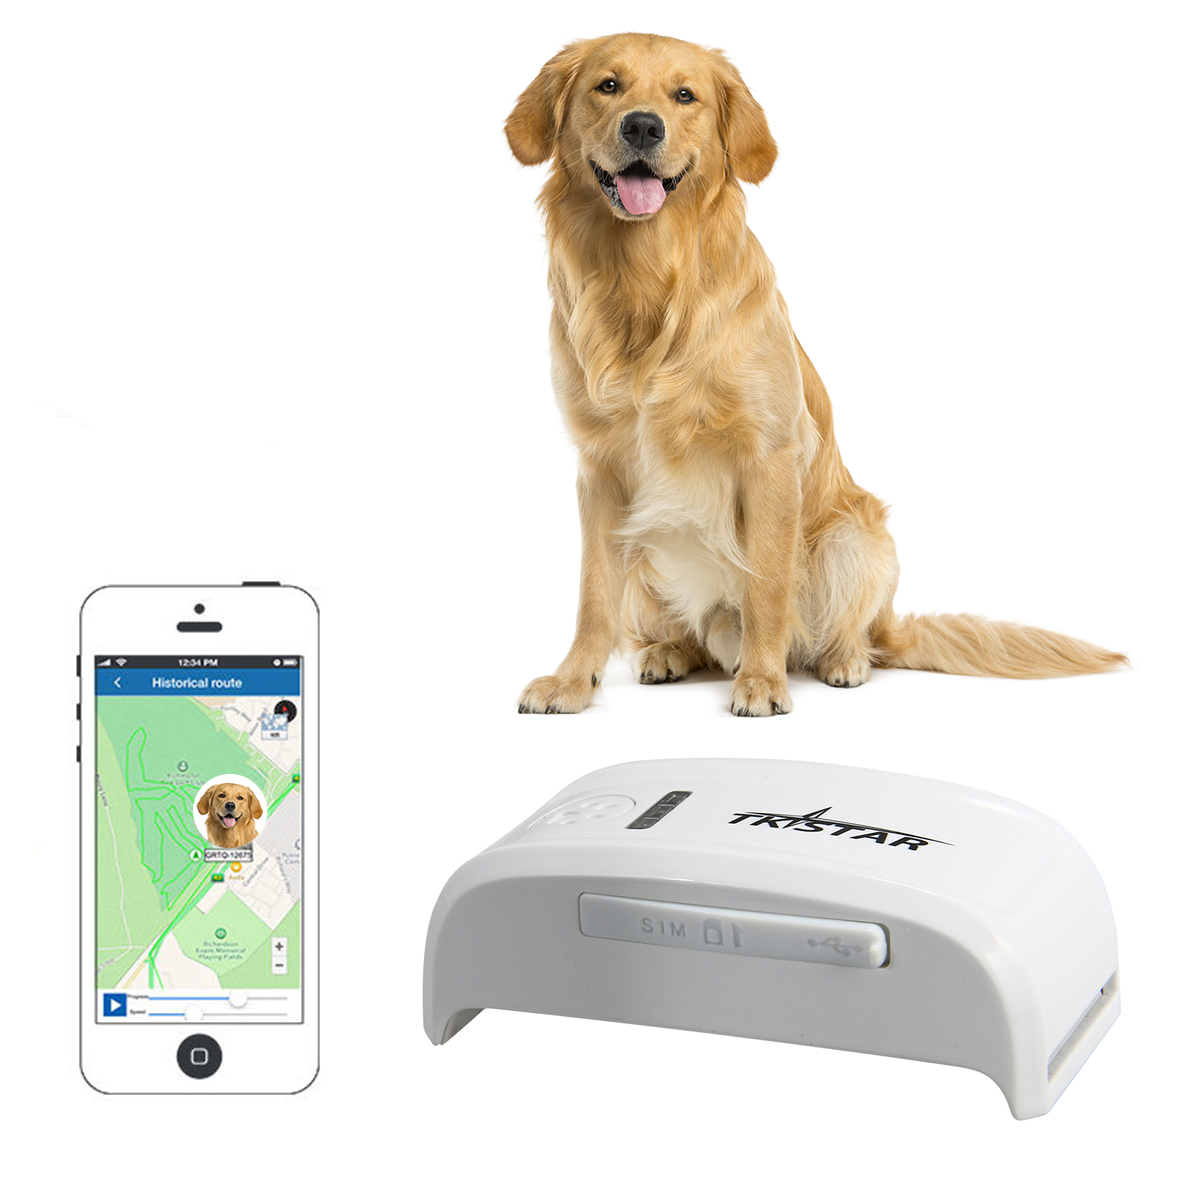 gps tracker localisation gsm balise balise chien animal collier traceur ps013 ebay. Black Bedroom Furniture Sets. Home Design Ideas